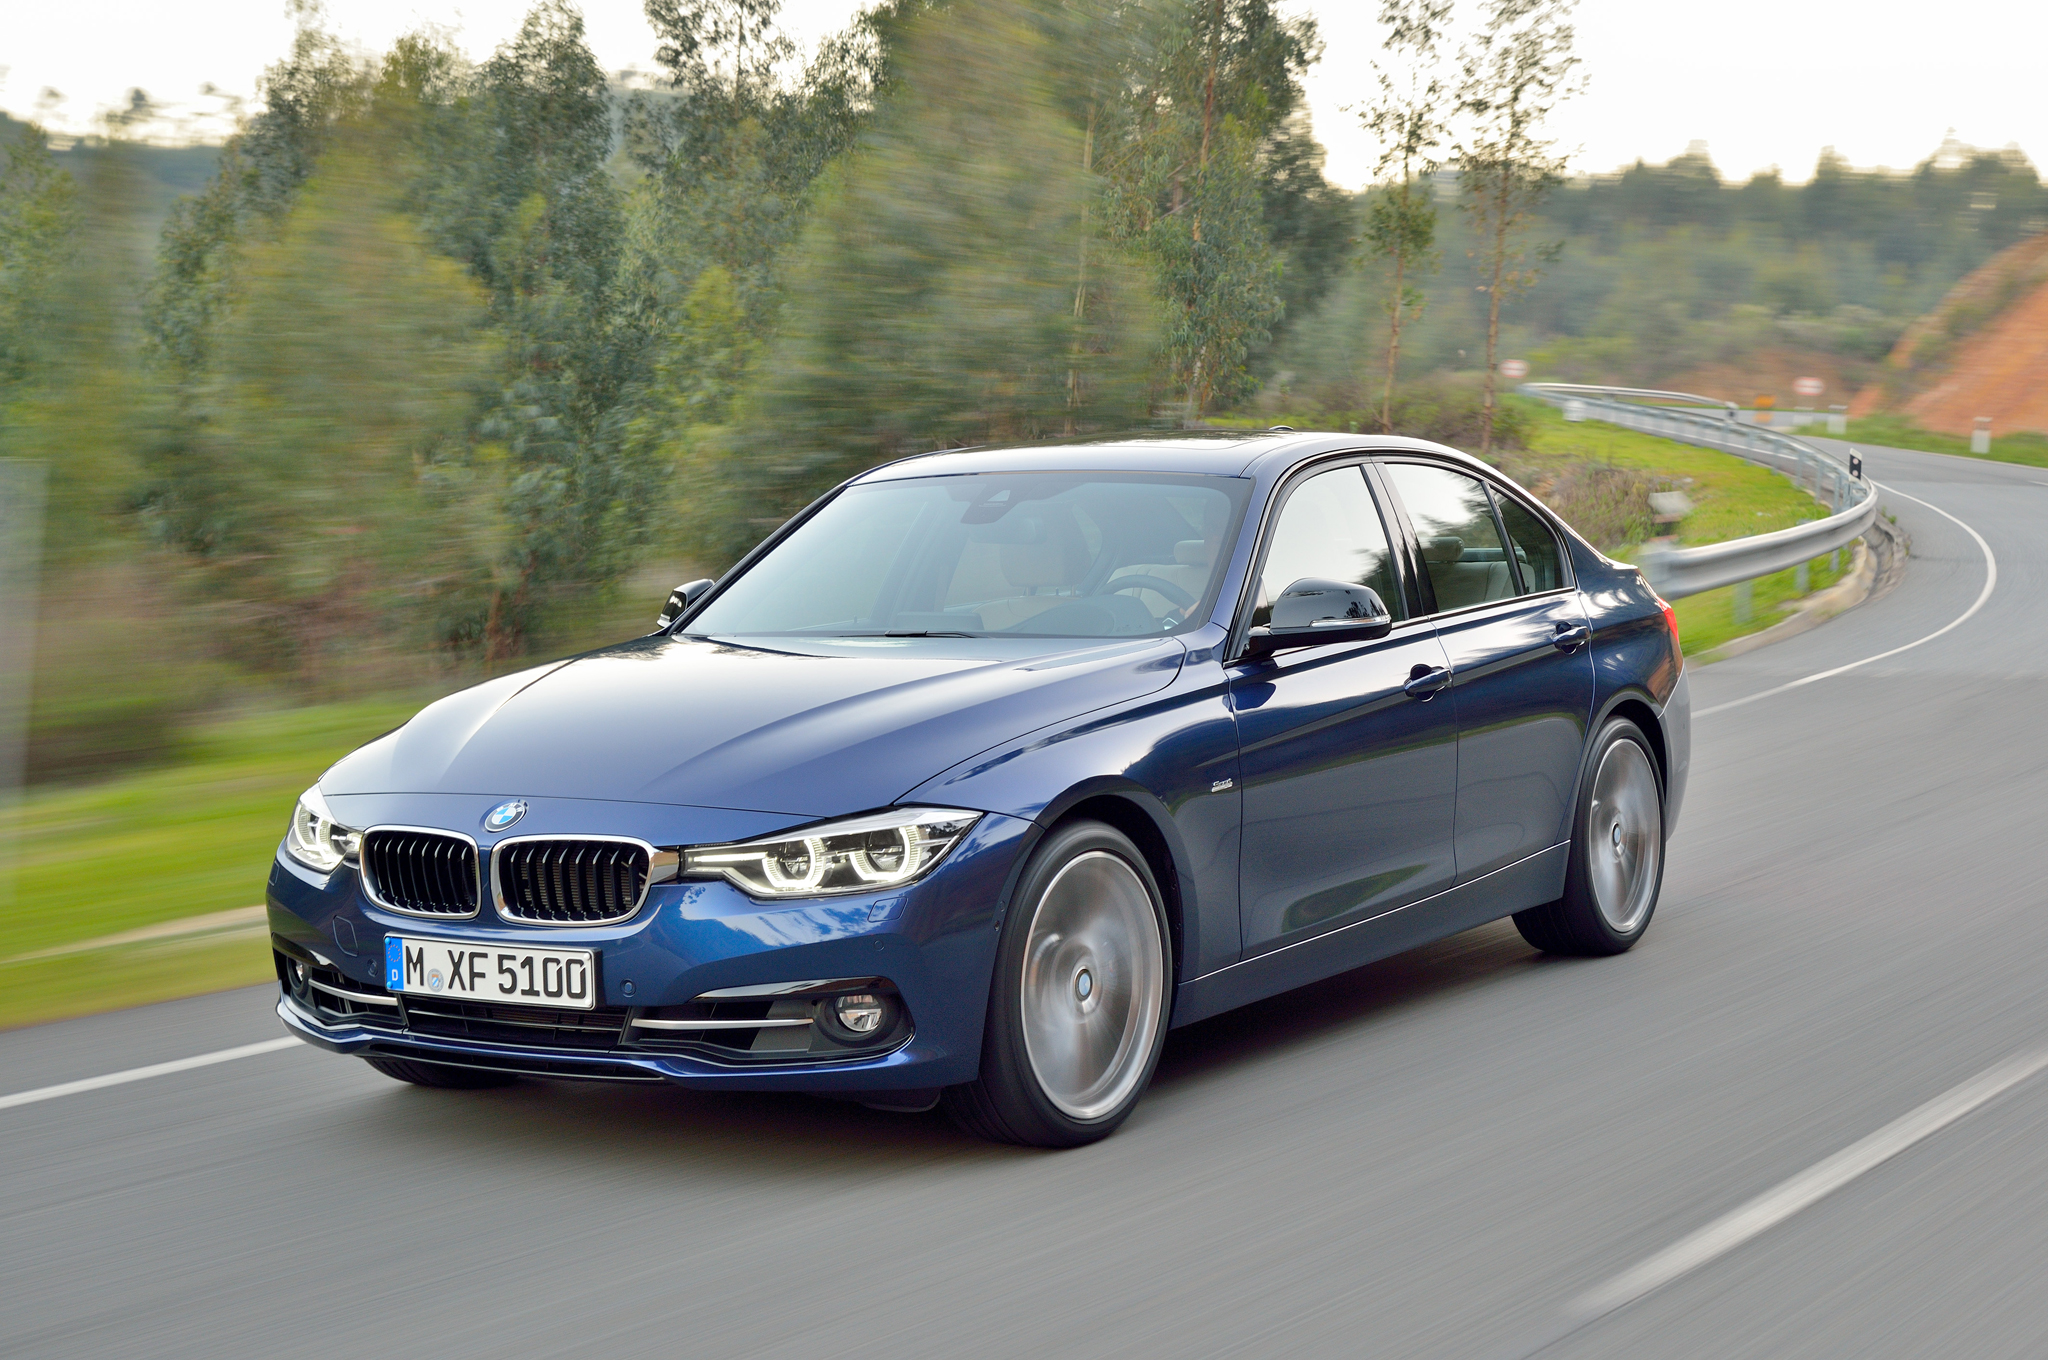 2016 Bmw 3 Series First Look Motortrend